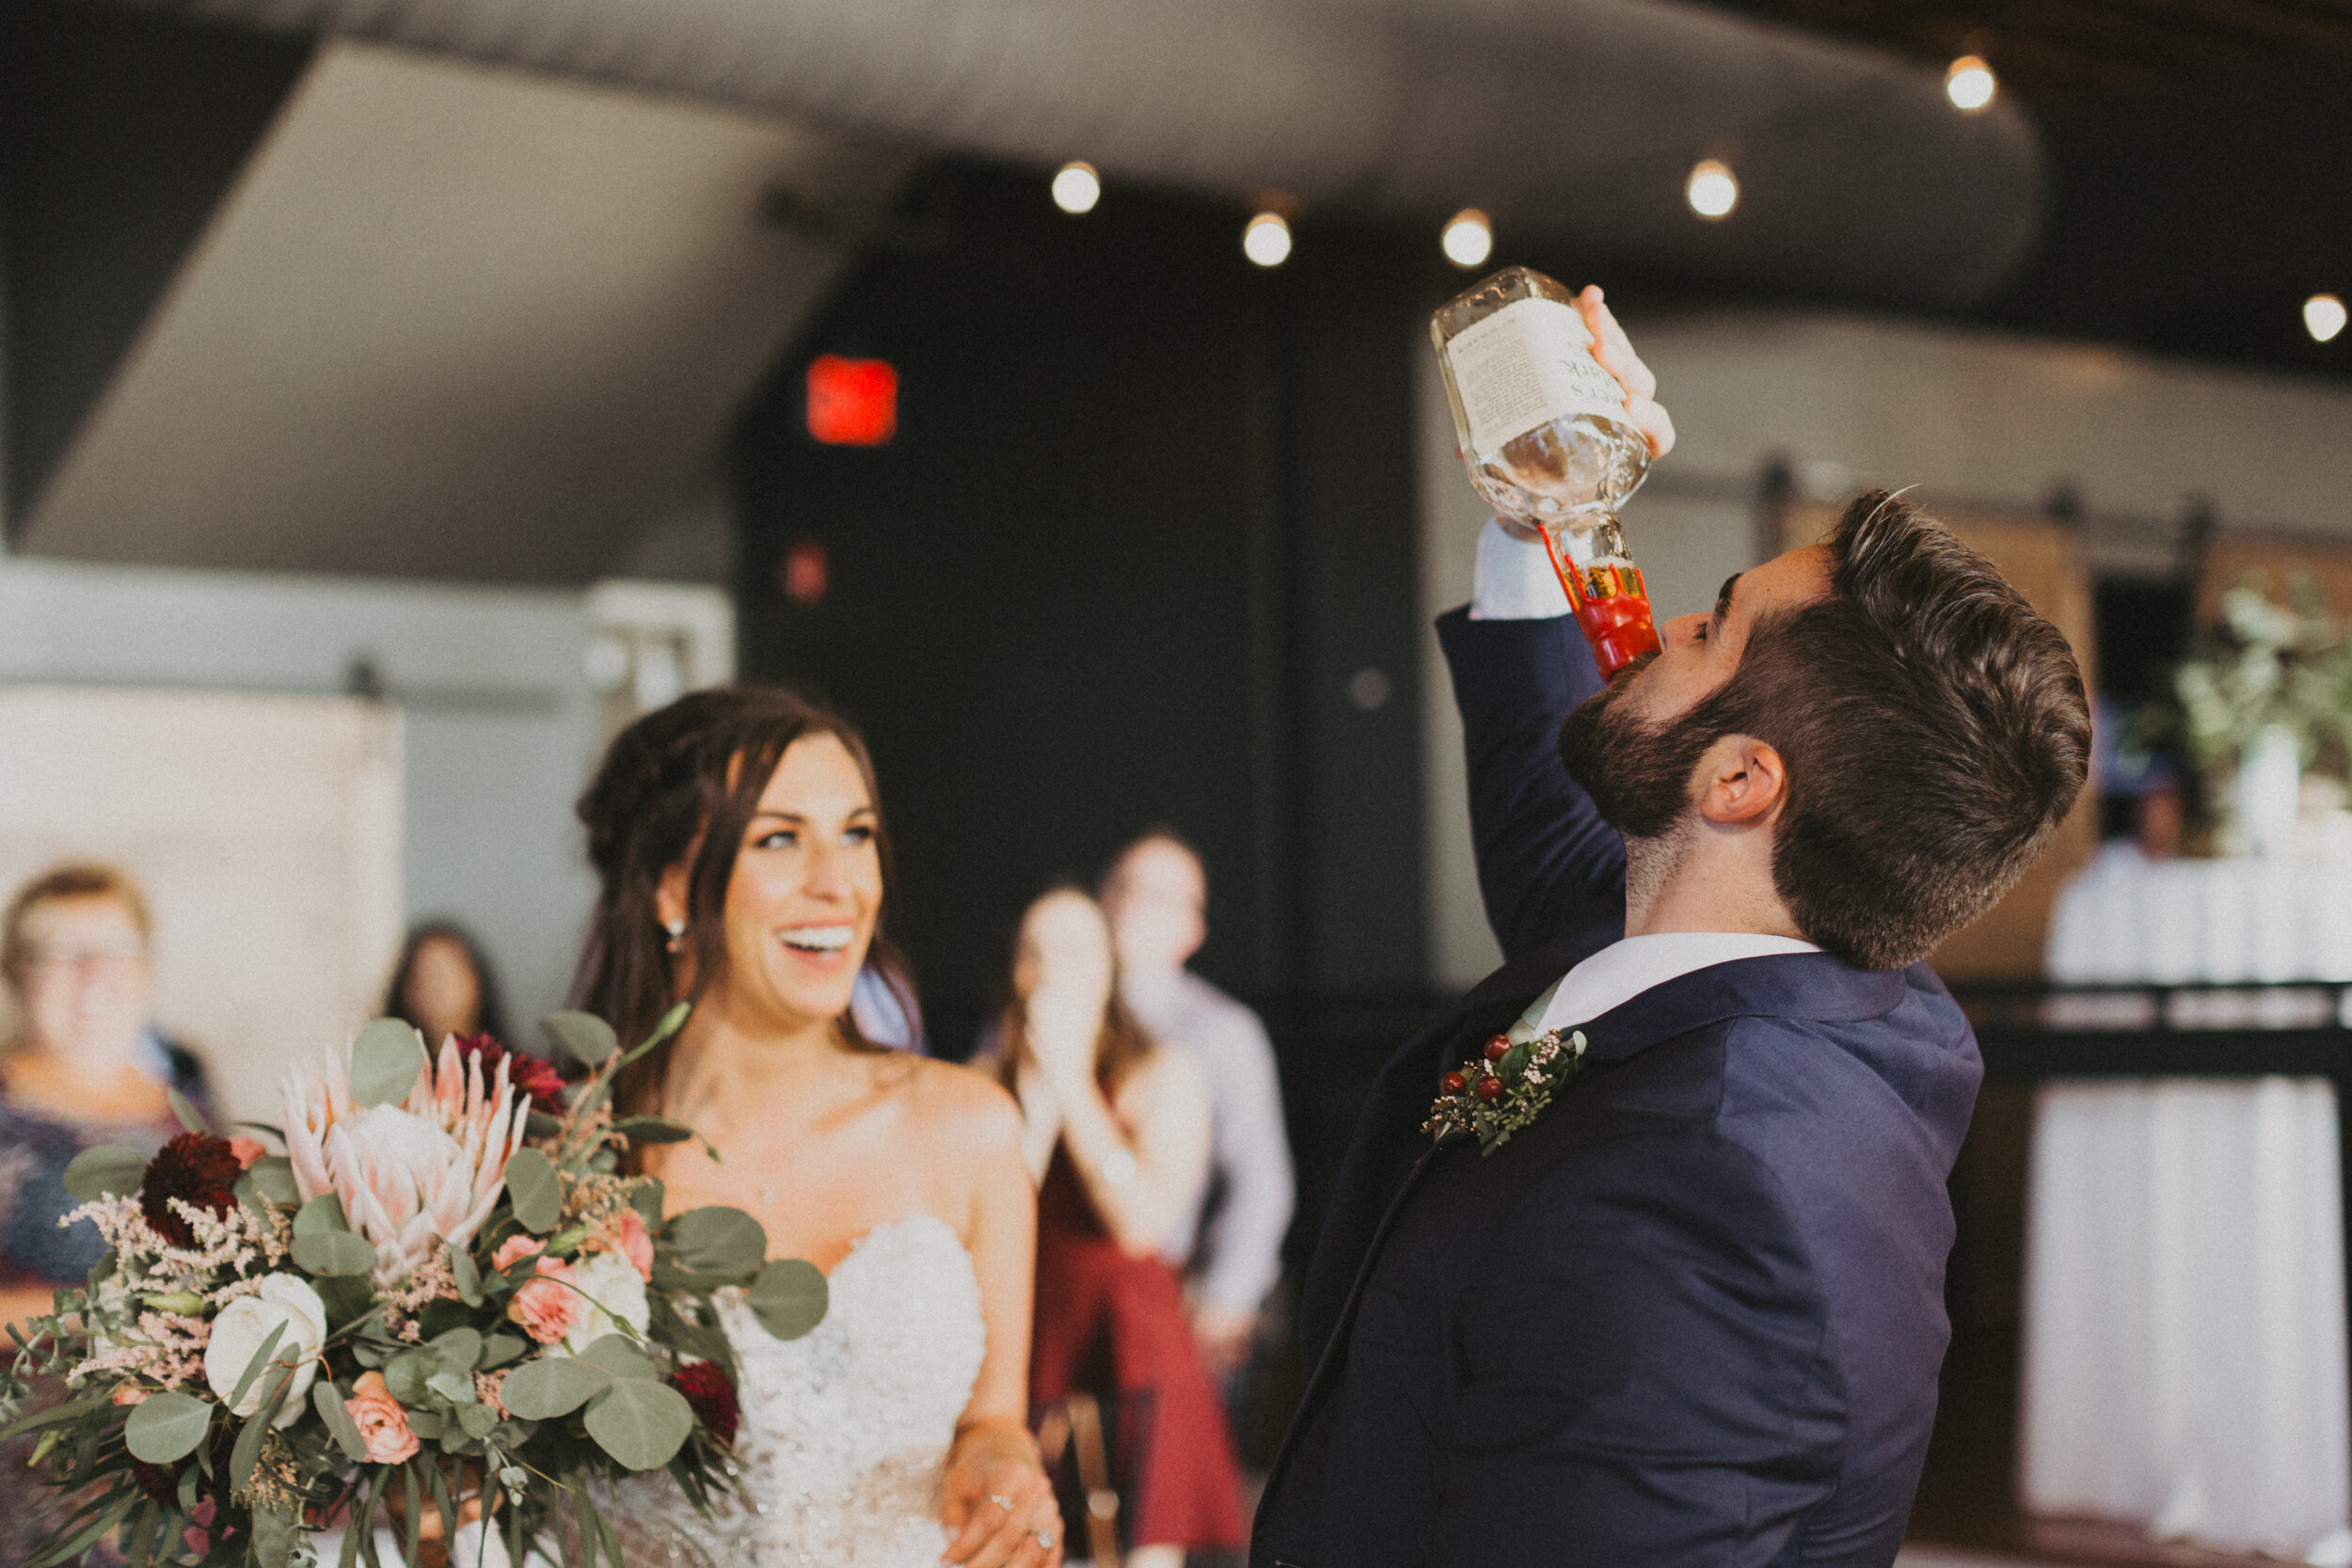 "So for our entrance, for the first time, I shared that bottle with someone. Logan and I both, in a very ""us"" way, took pulls from his bottle as our entrance to the reception. Those who knew about the bottle obviously loved it, and those who didn't loved it because it was just so us!"